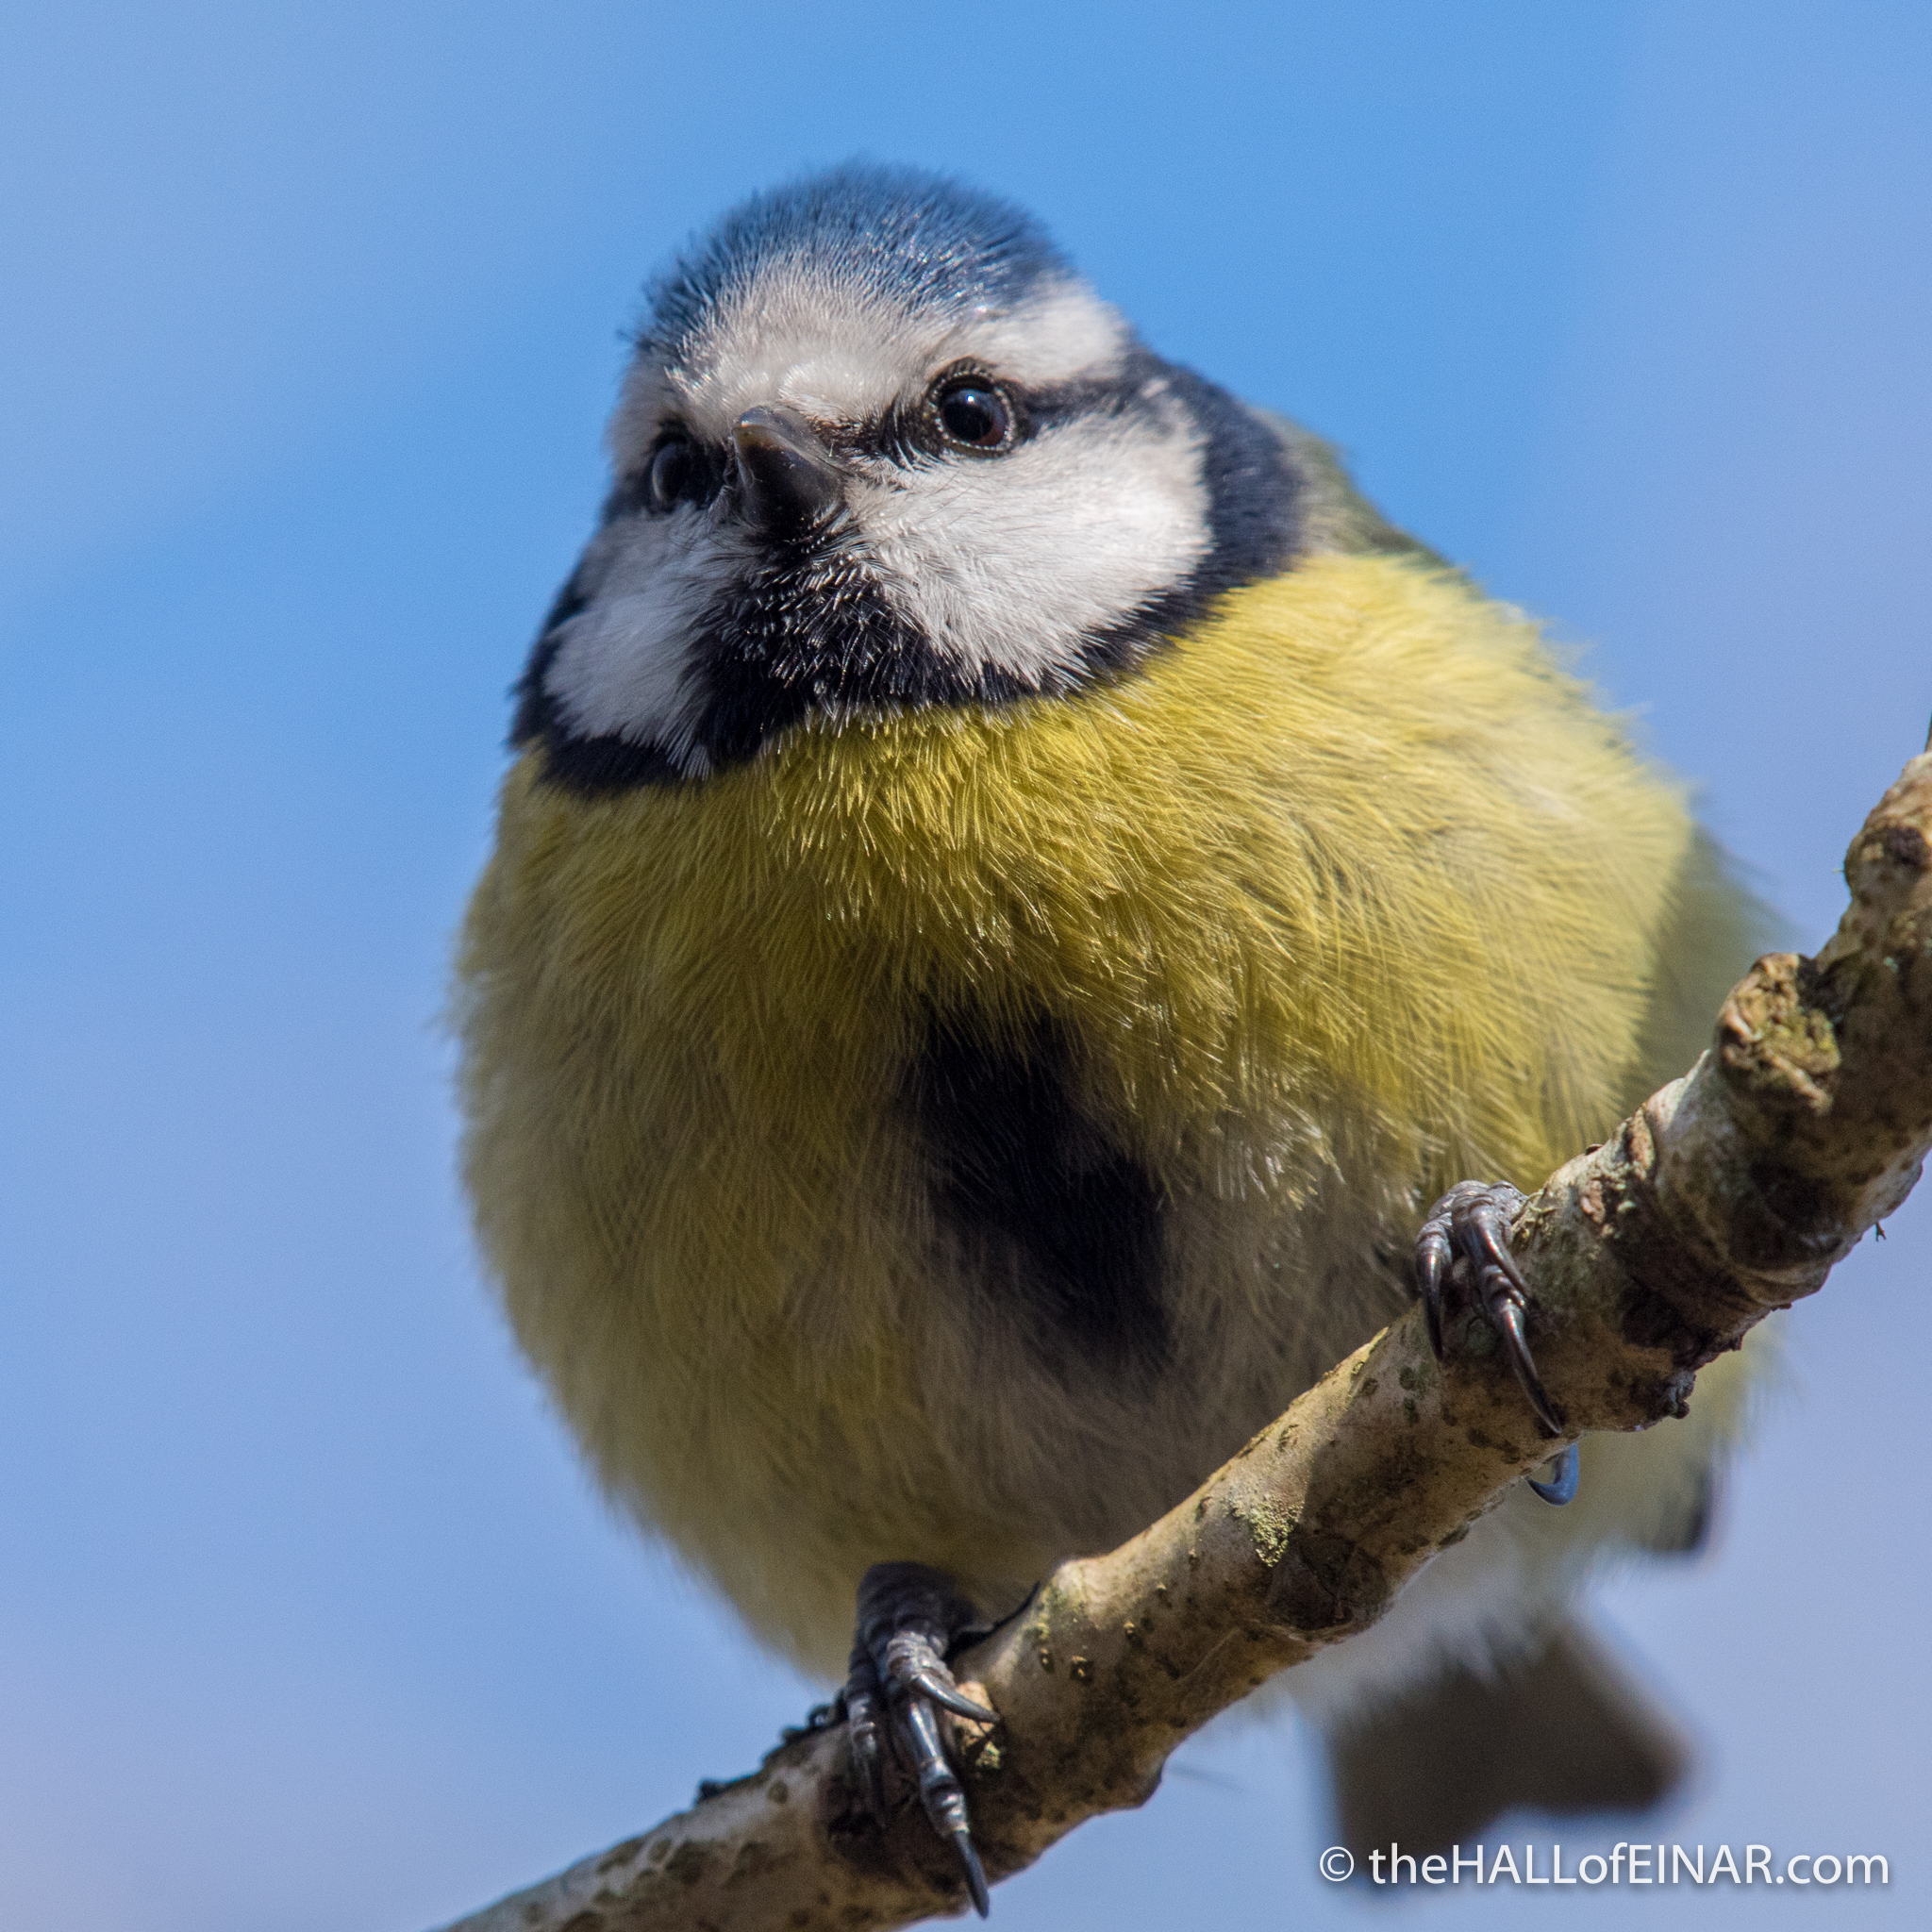 Blue Tit - The Hall of Einar - photograph (c) David Bailey (not the(